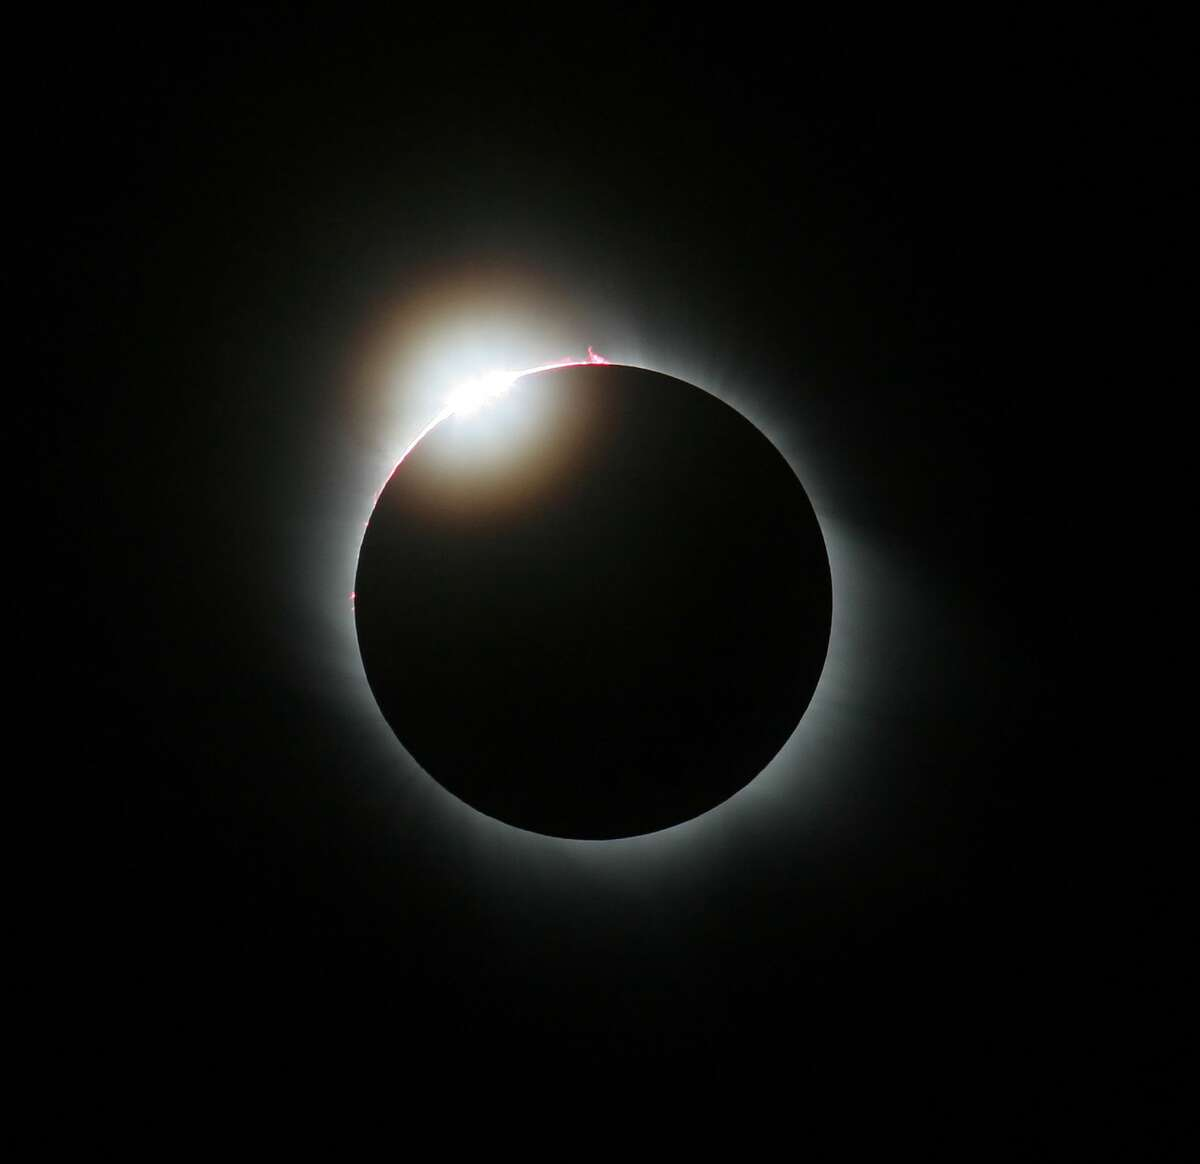 In the cockpit: Flight attendant secrets Southwest Airlines is offering flights that allow passengers a view of the total solar eclipse from the air. Click through to seesecrets flight attendants won't tell you.